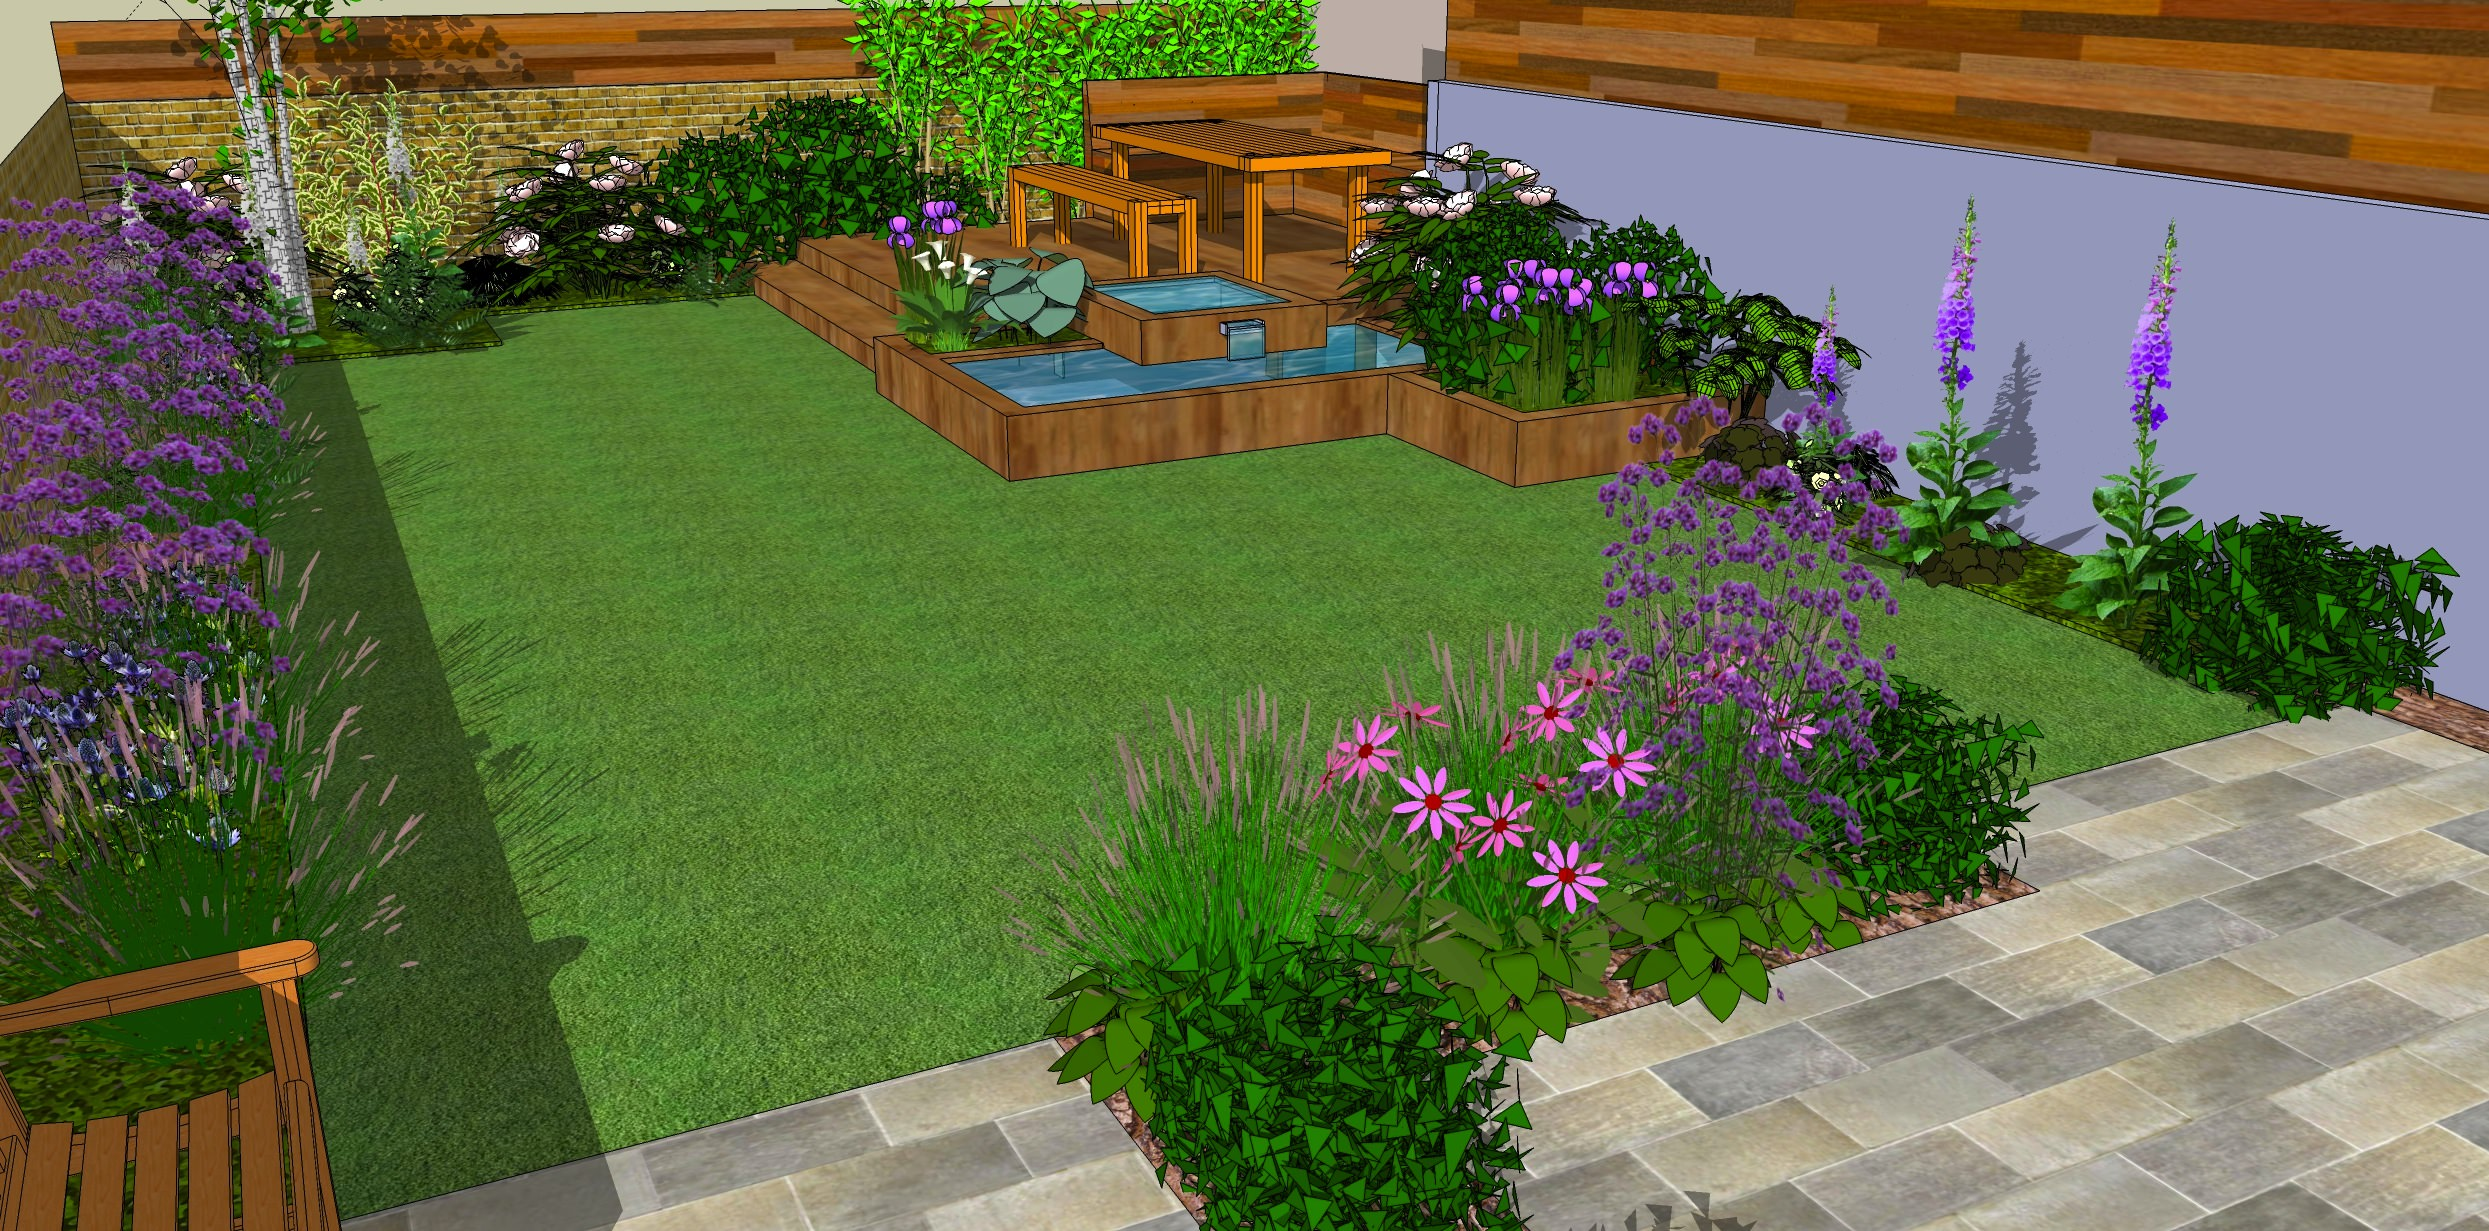 Low maintenance garden designs garden club london for Garden design tips